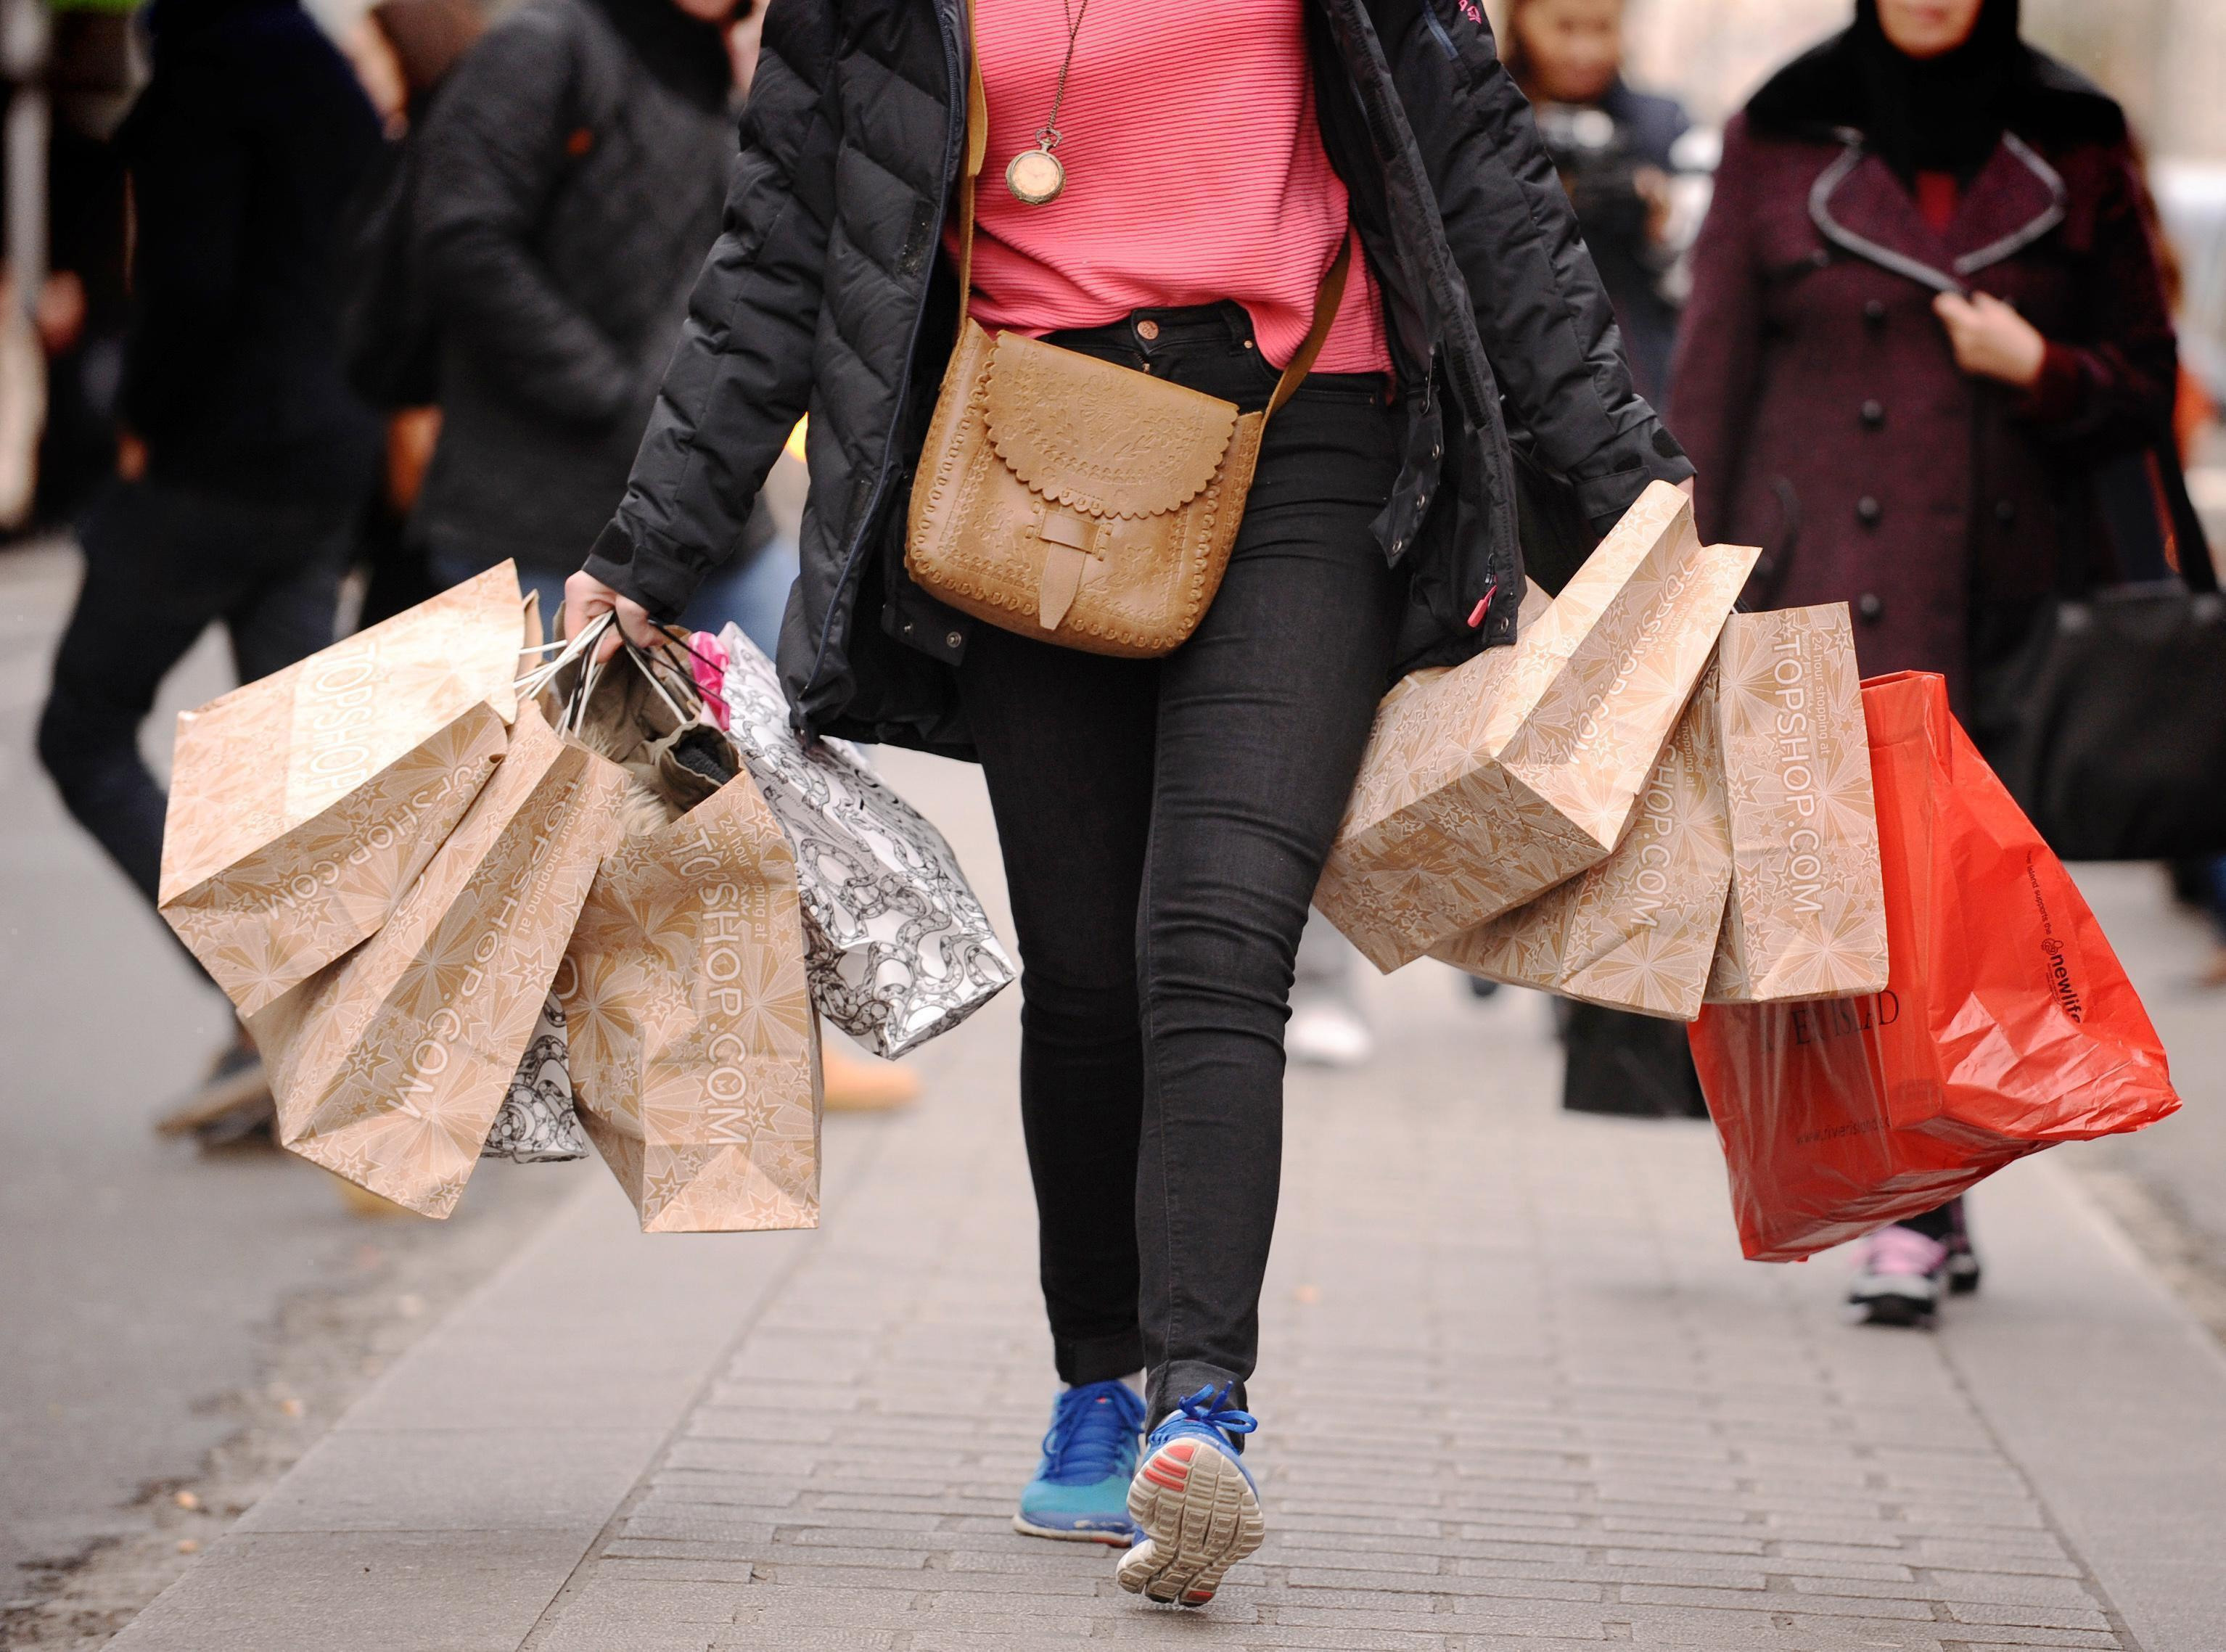 Three-quarters of shoppers feel pressured to find a bargain